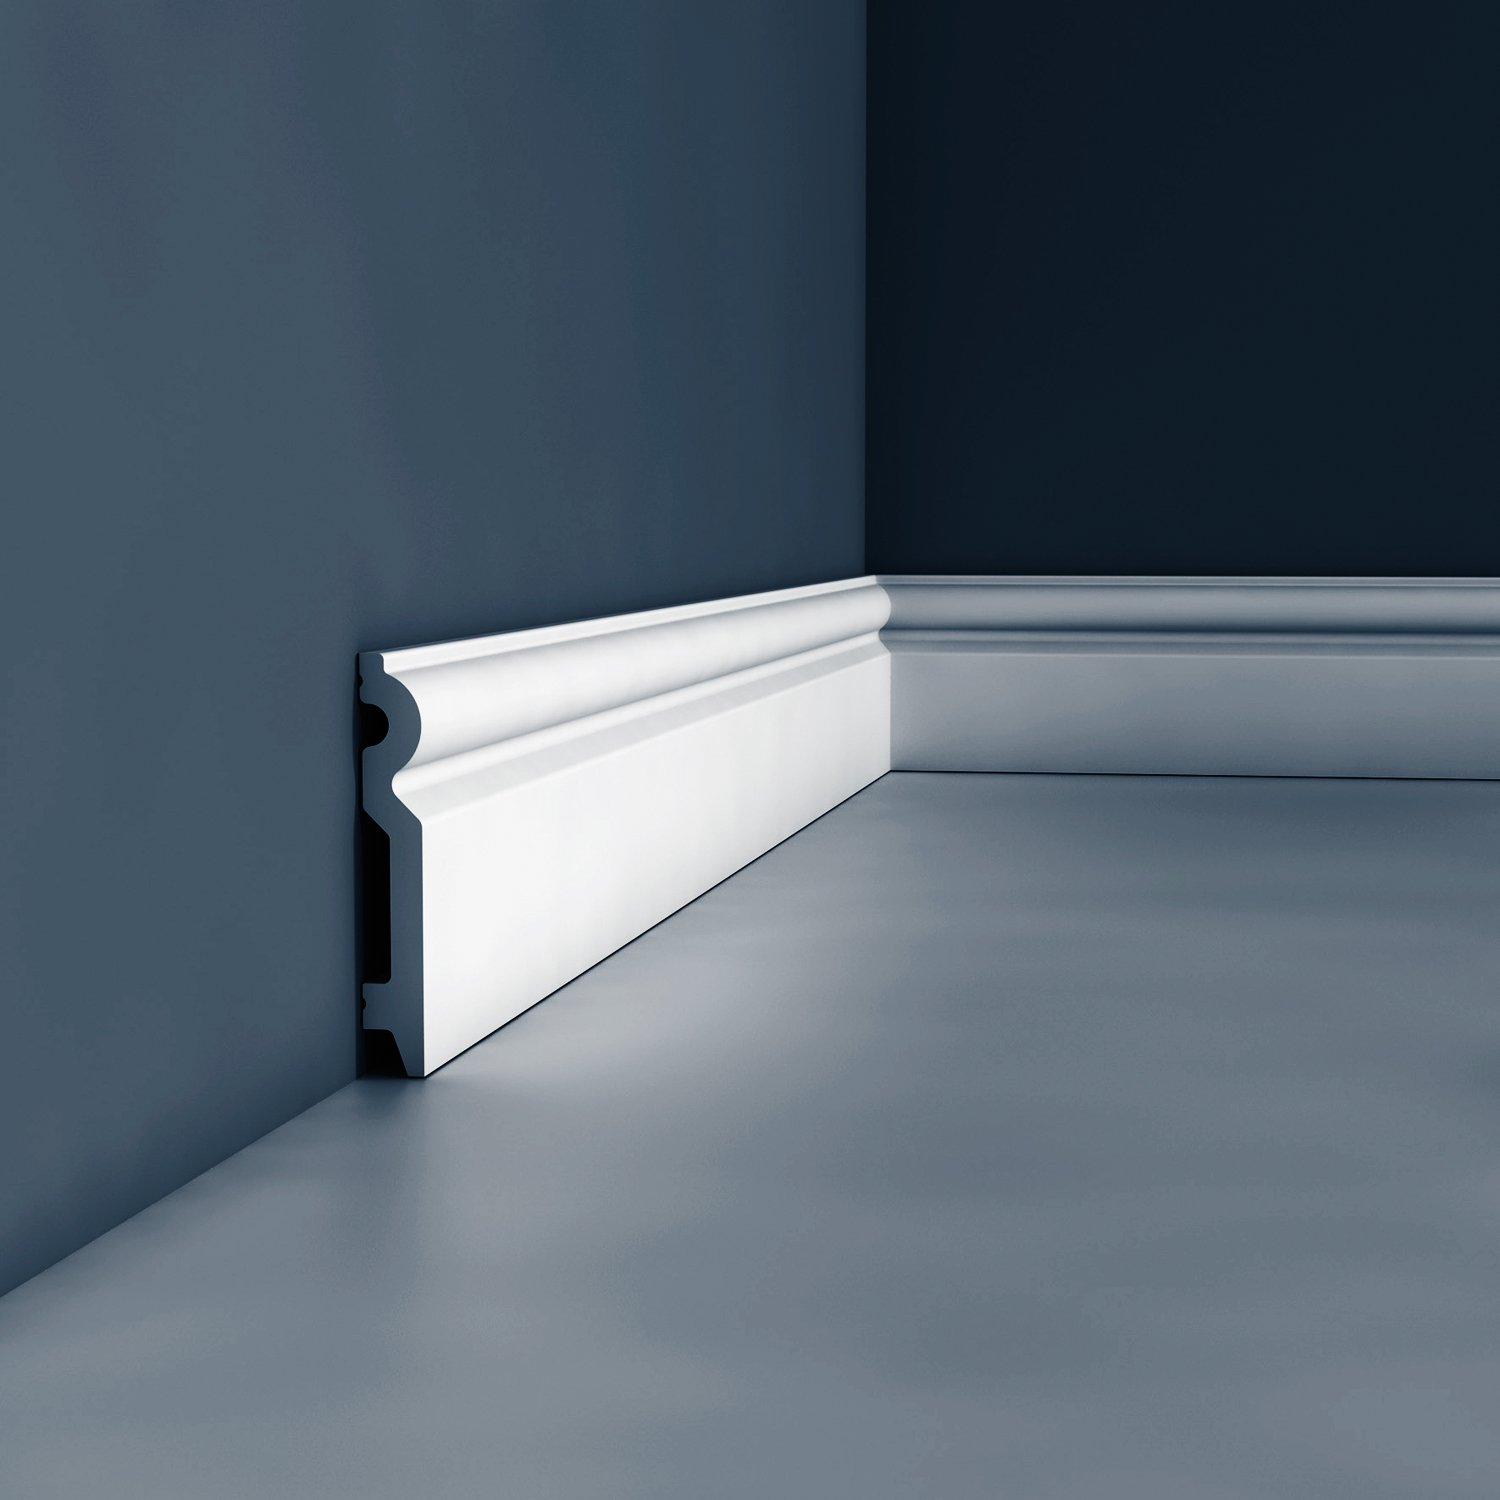 Skirting Orac Decor SX137F AXXENT Flexible moulding decorative moulding modern look white 2m